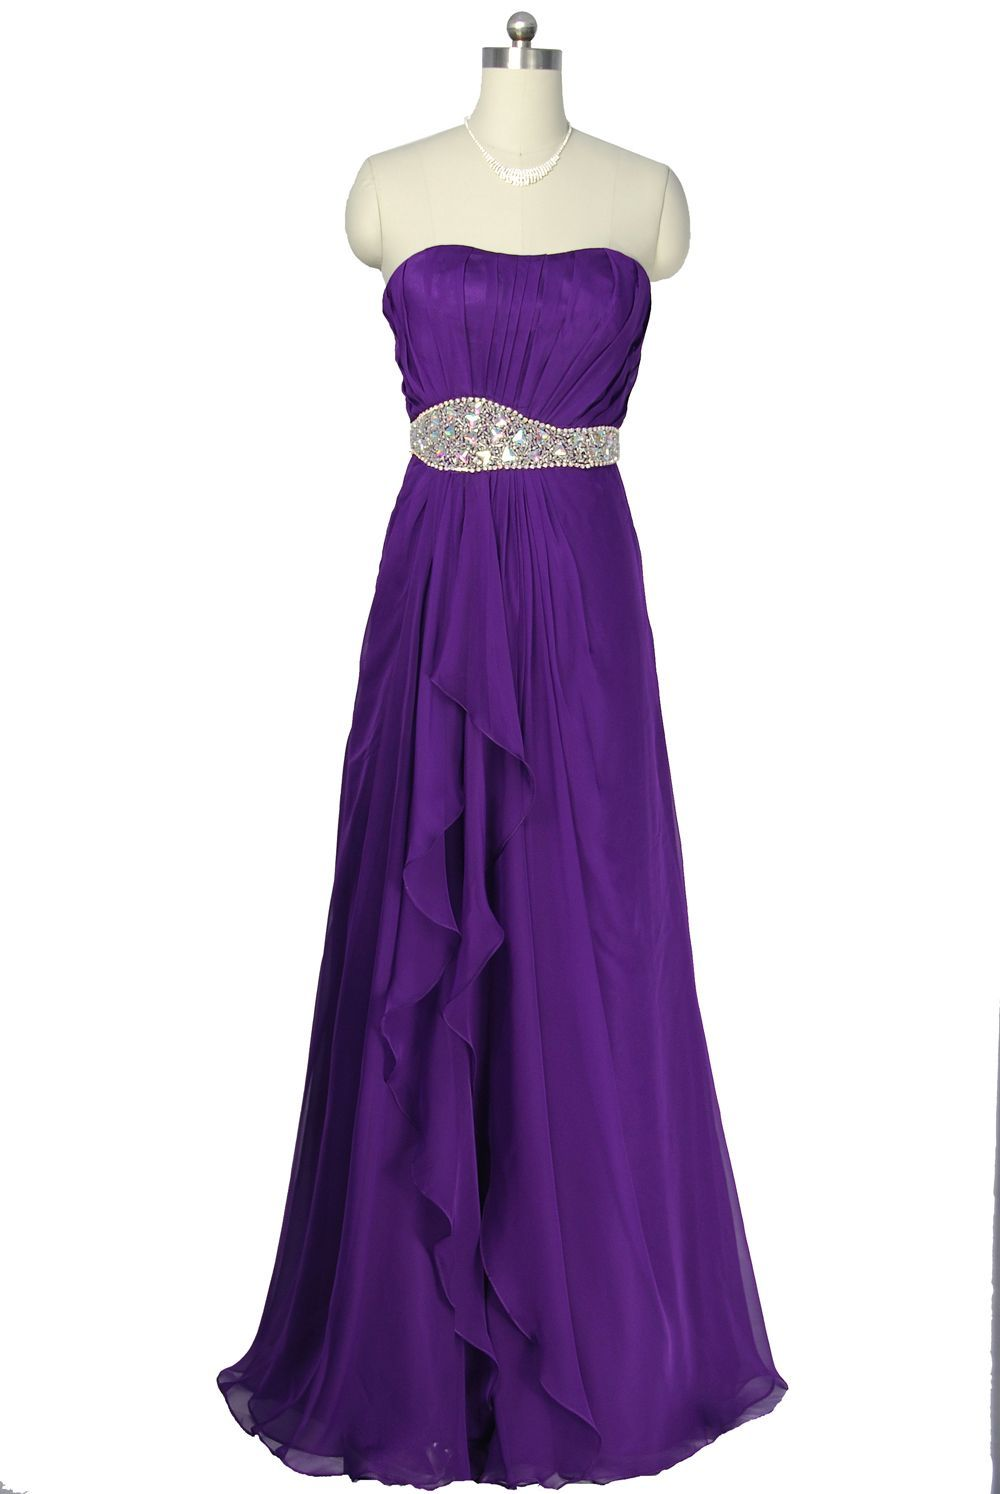 Lavender Bridesmaid Dresses Uk Gallery - Braidsmaid Dress, Cocktail ...